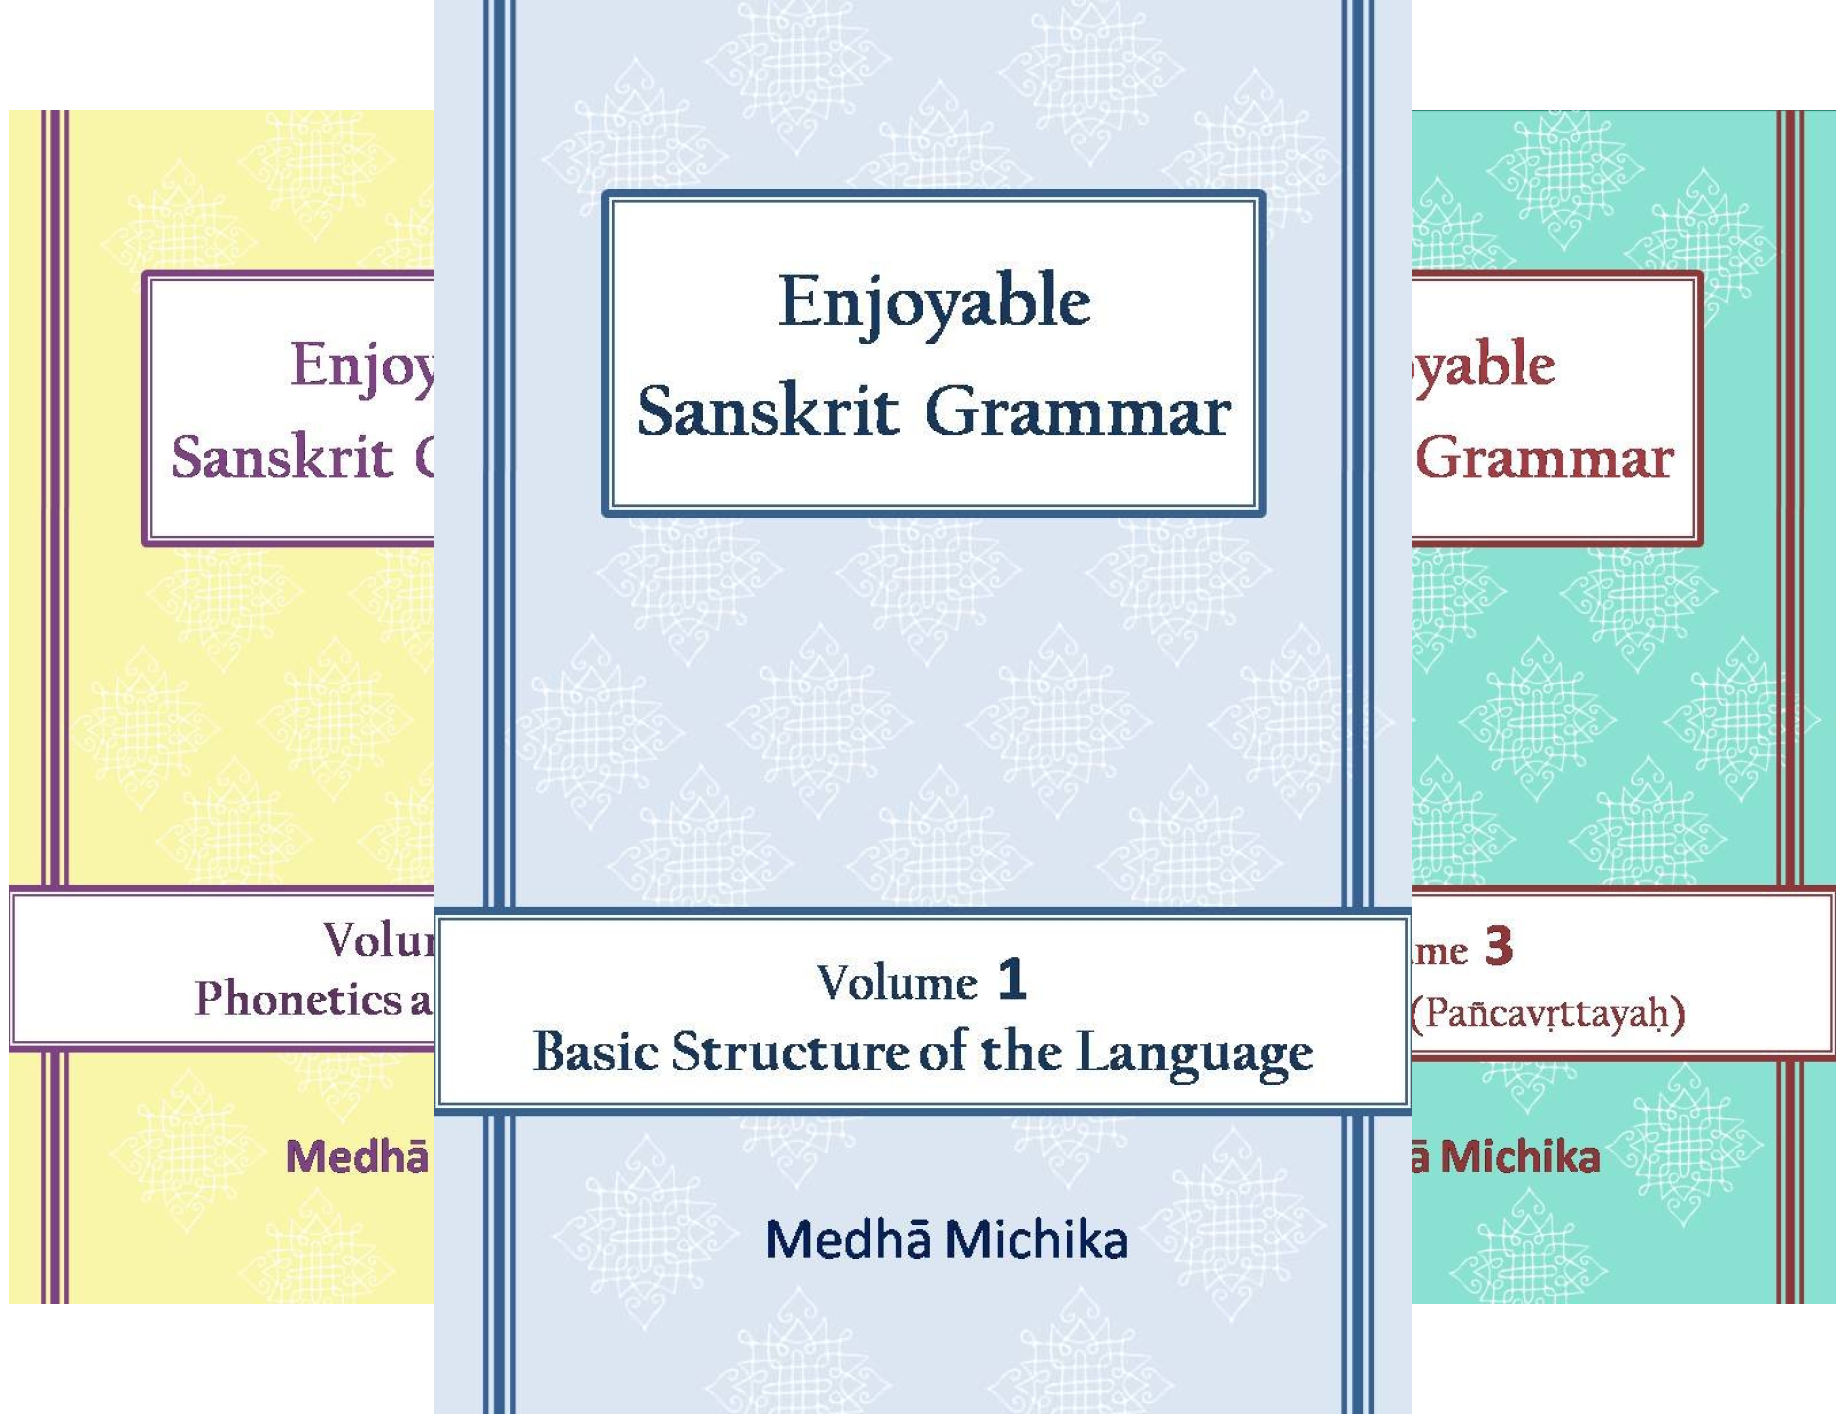 Enjoyable Sanskrit Grammar (3 Book Series)